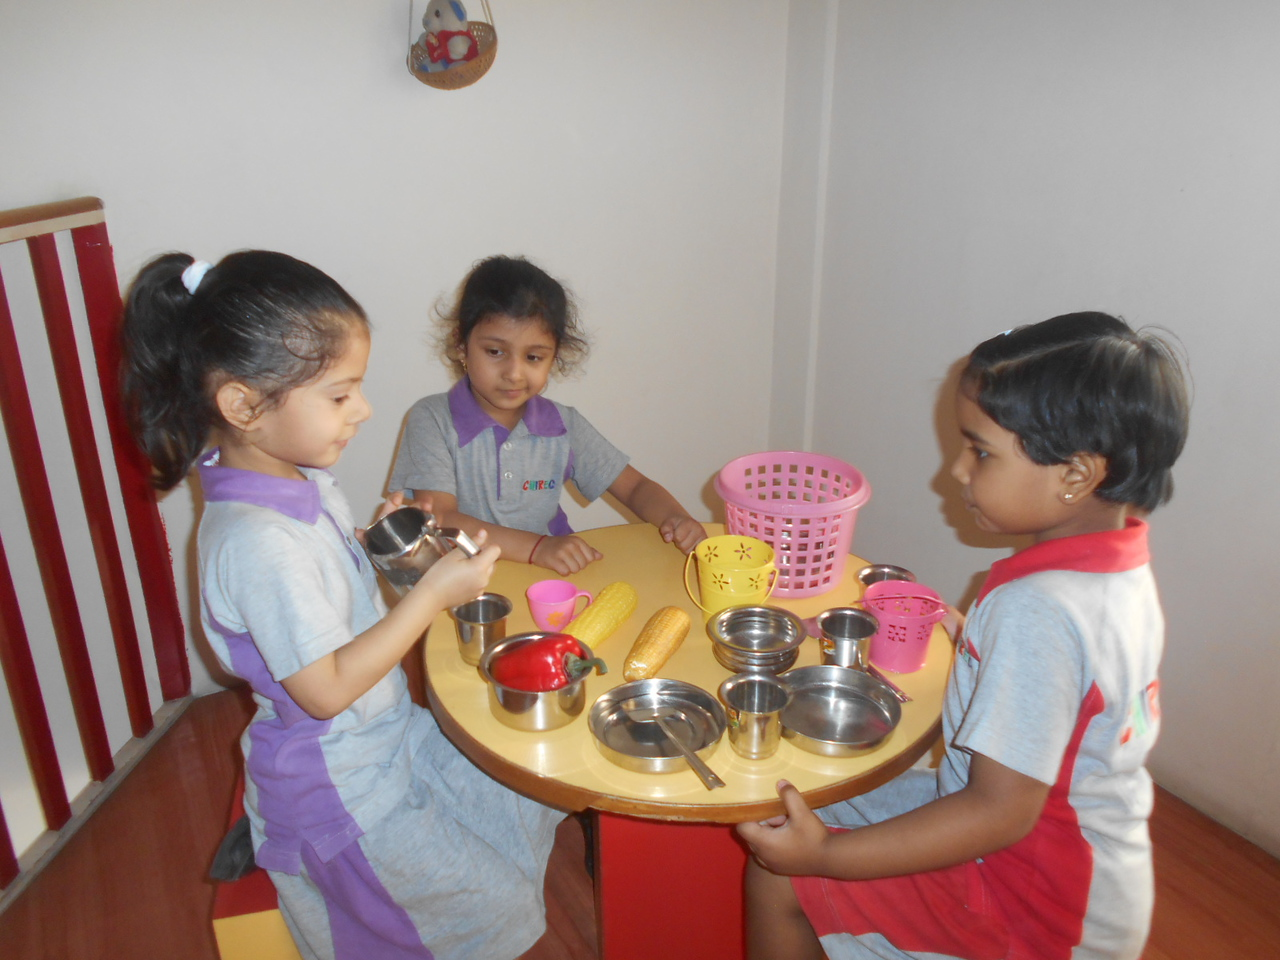 ROLE PLAY IN THE DOLL HOUSE